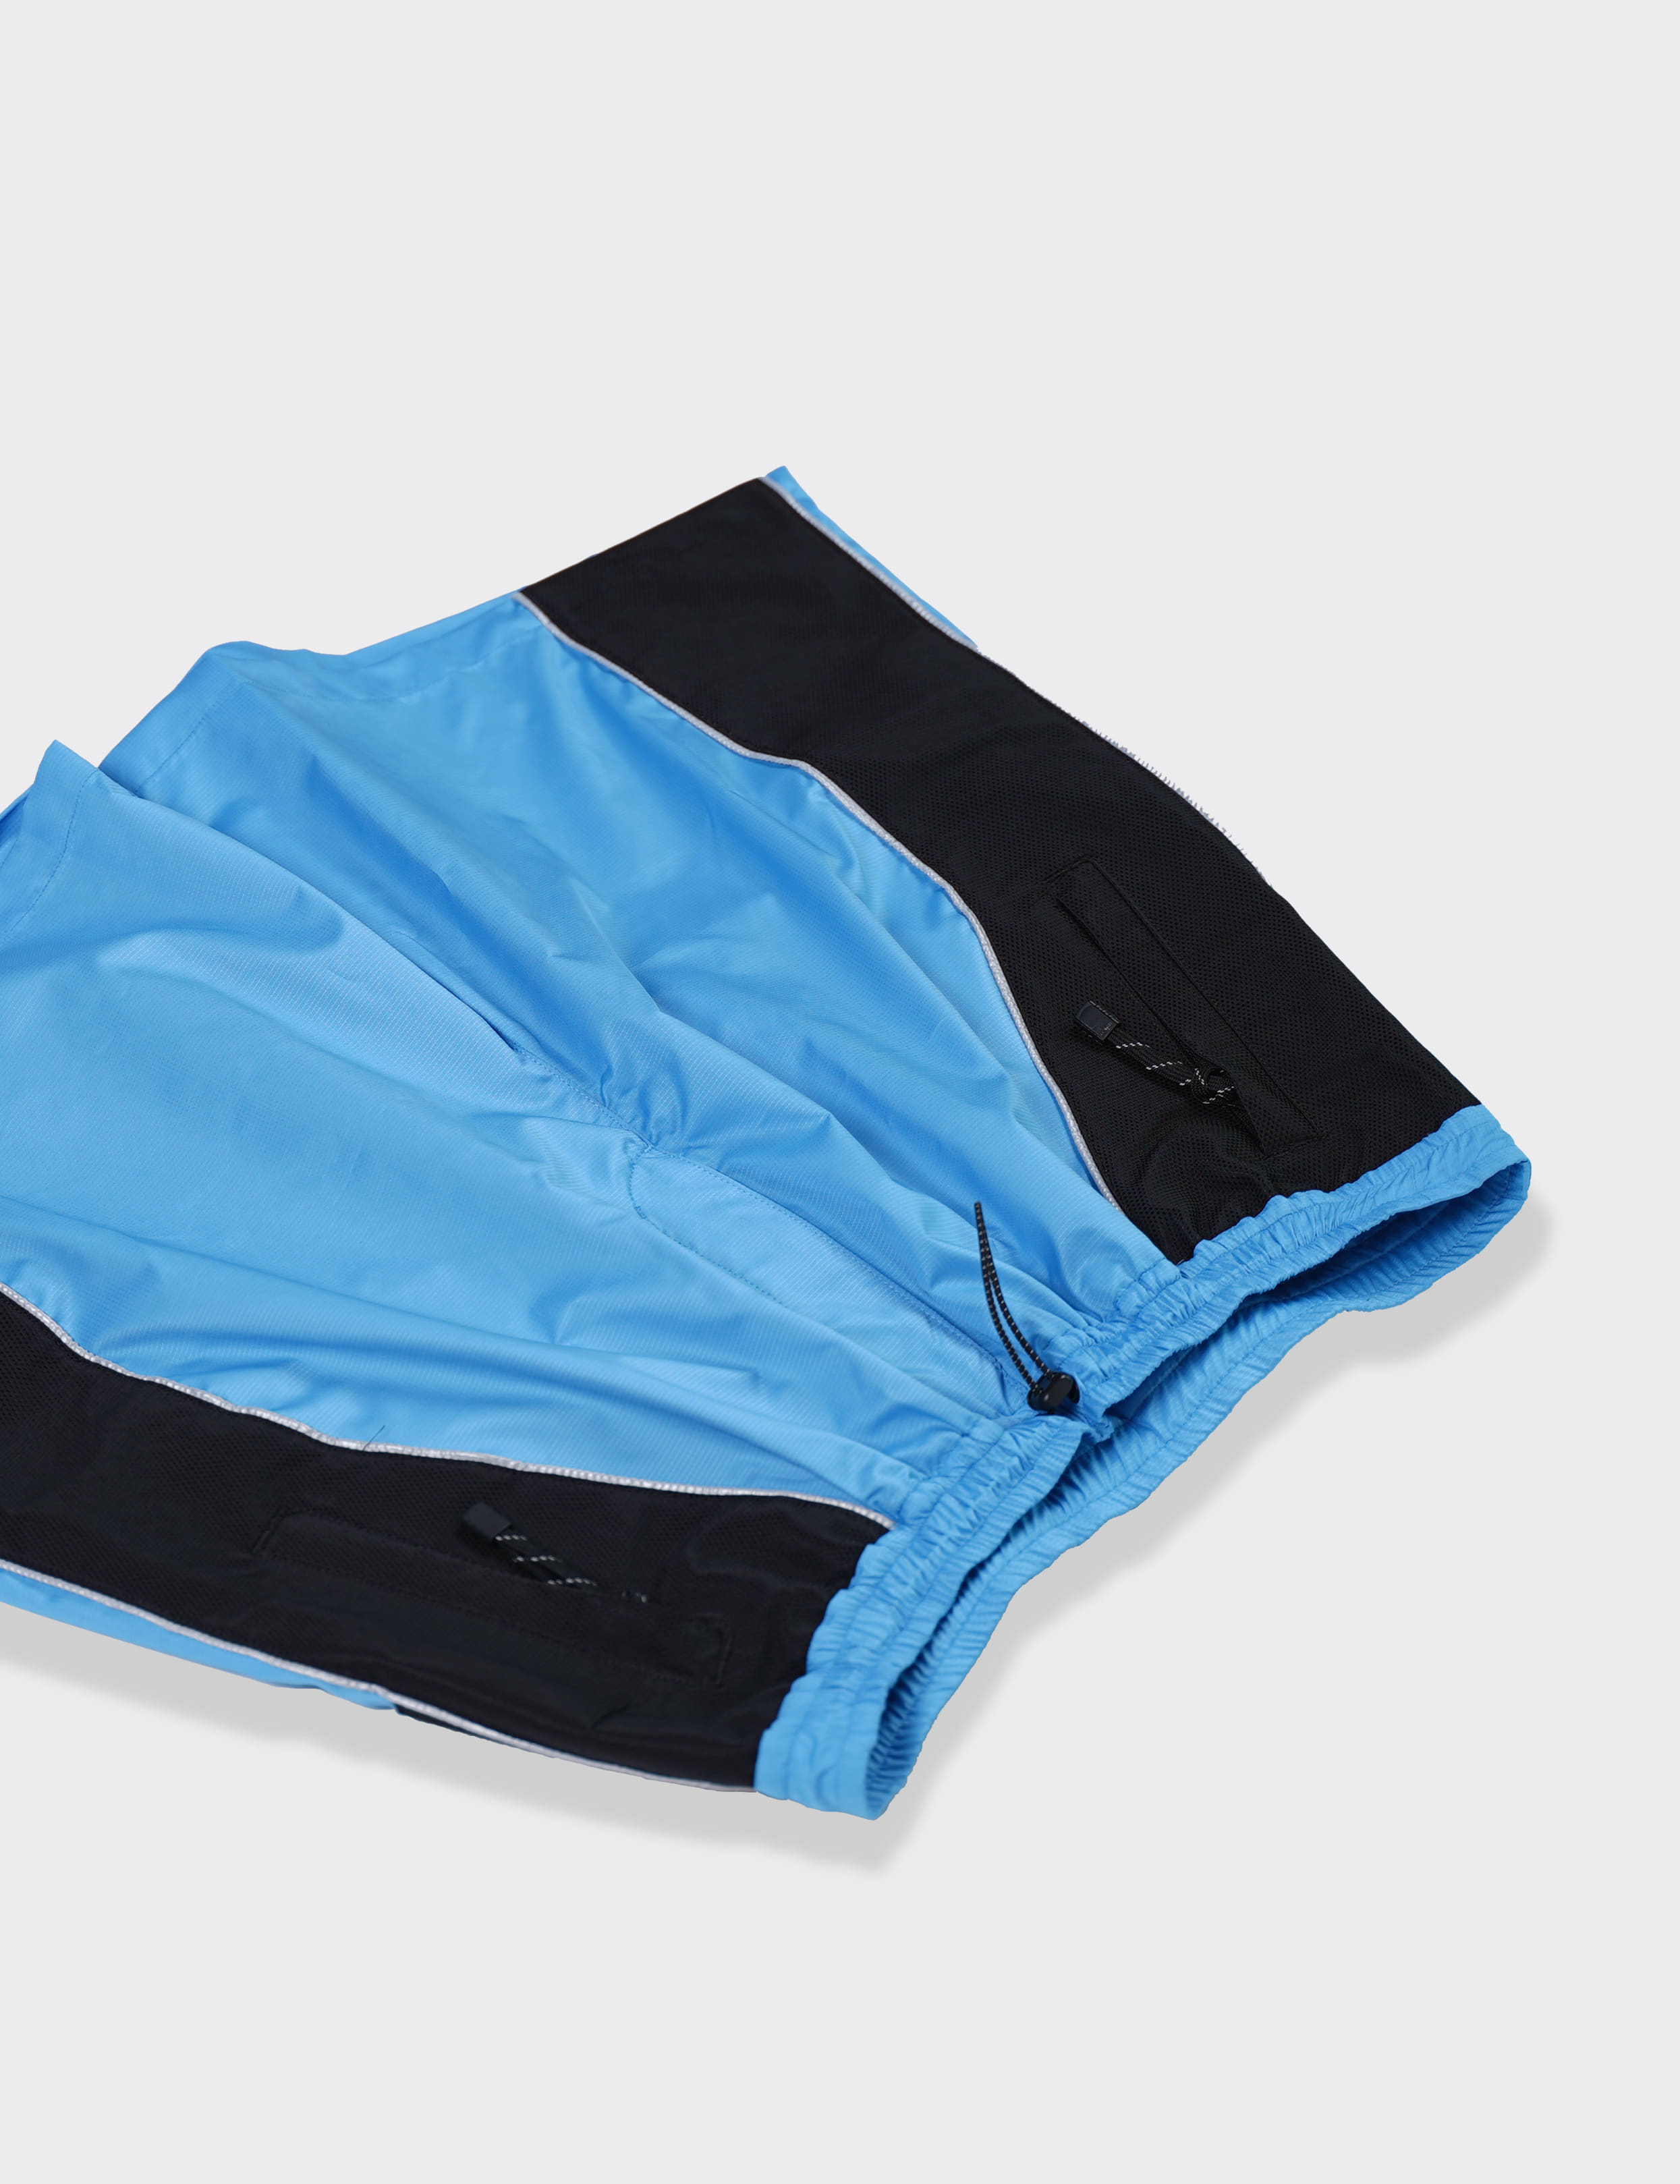 Name. : NYLON MOUNTAIN SHORTS (SAX)